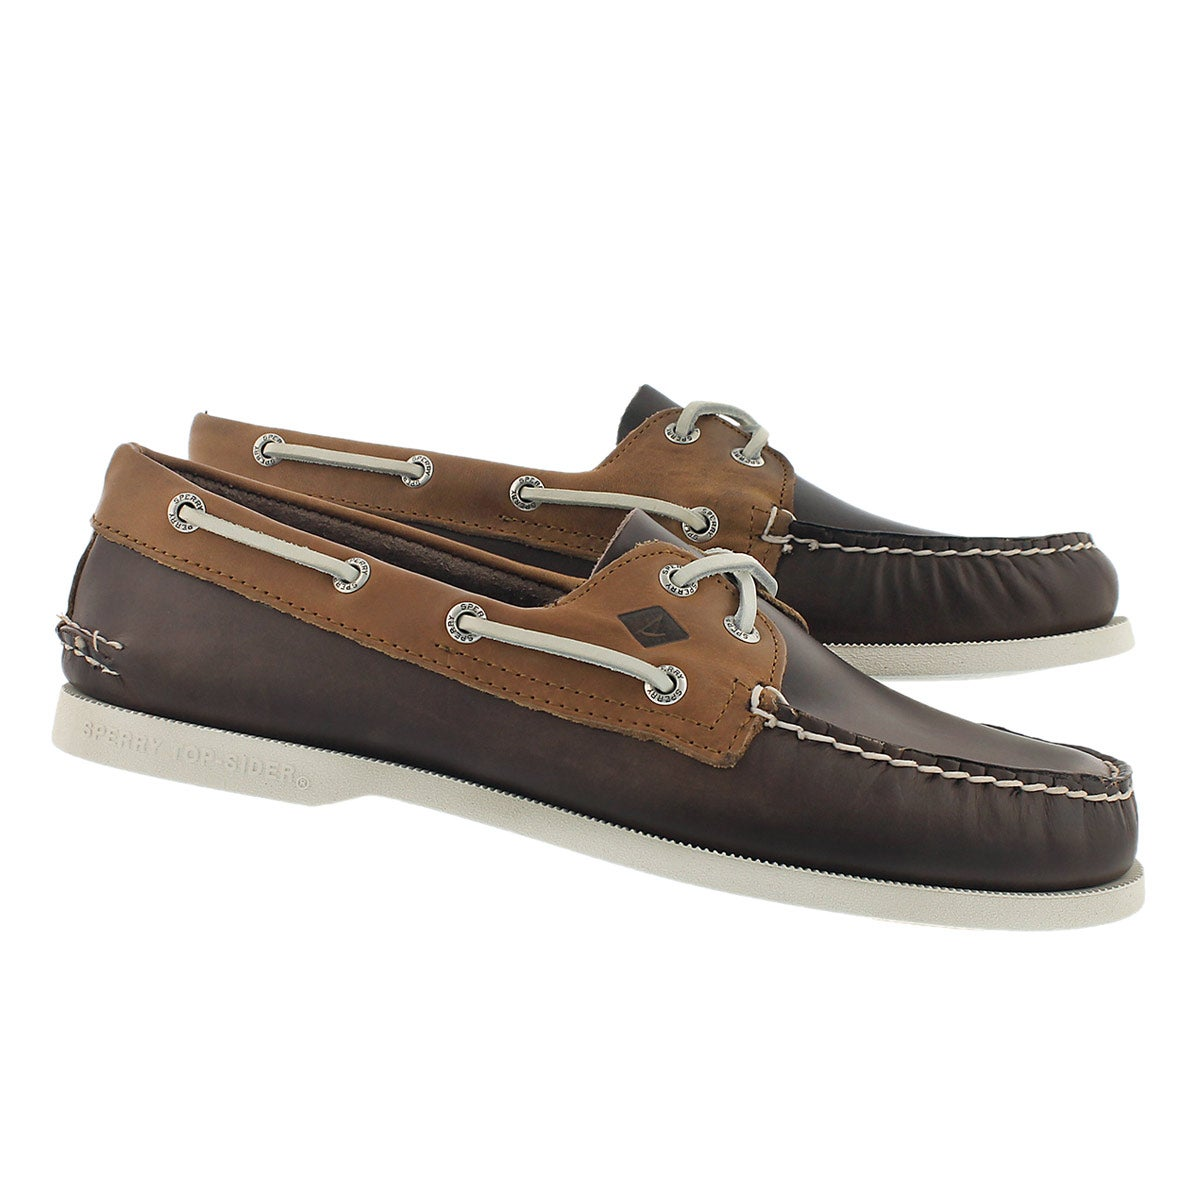 Mns A/O 2-Eye Sarape brn/tan boat shoe